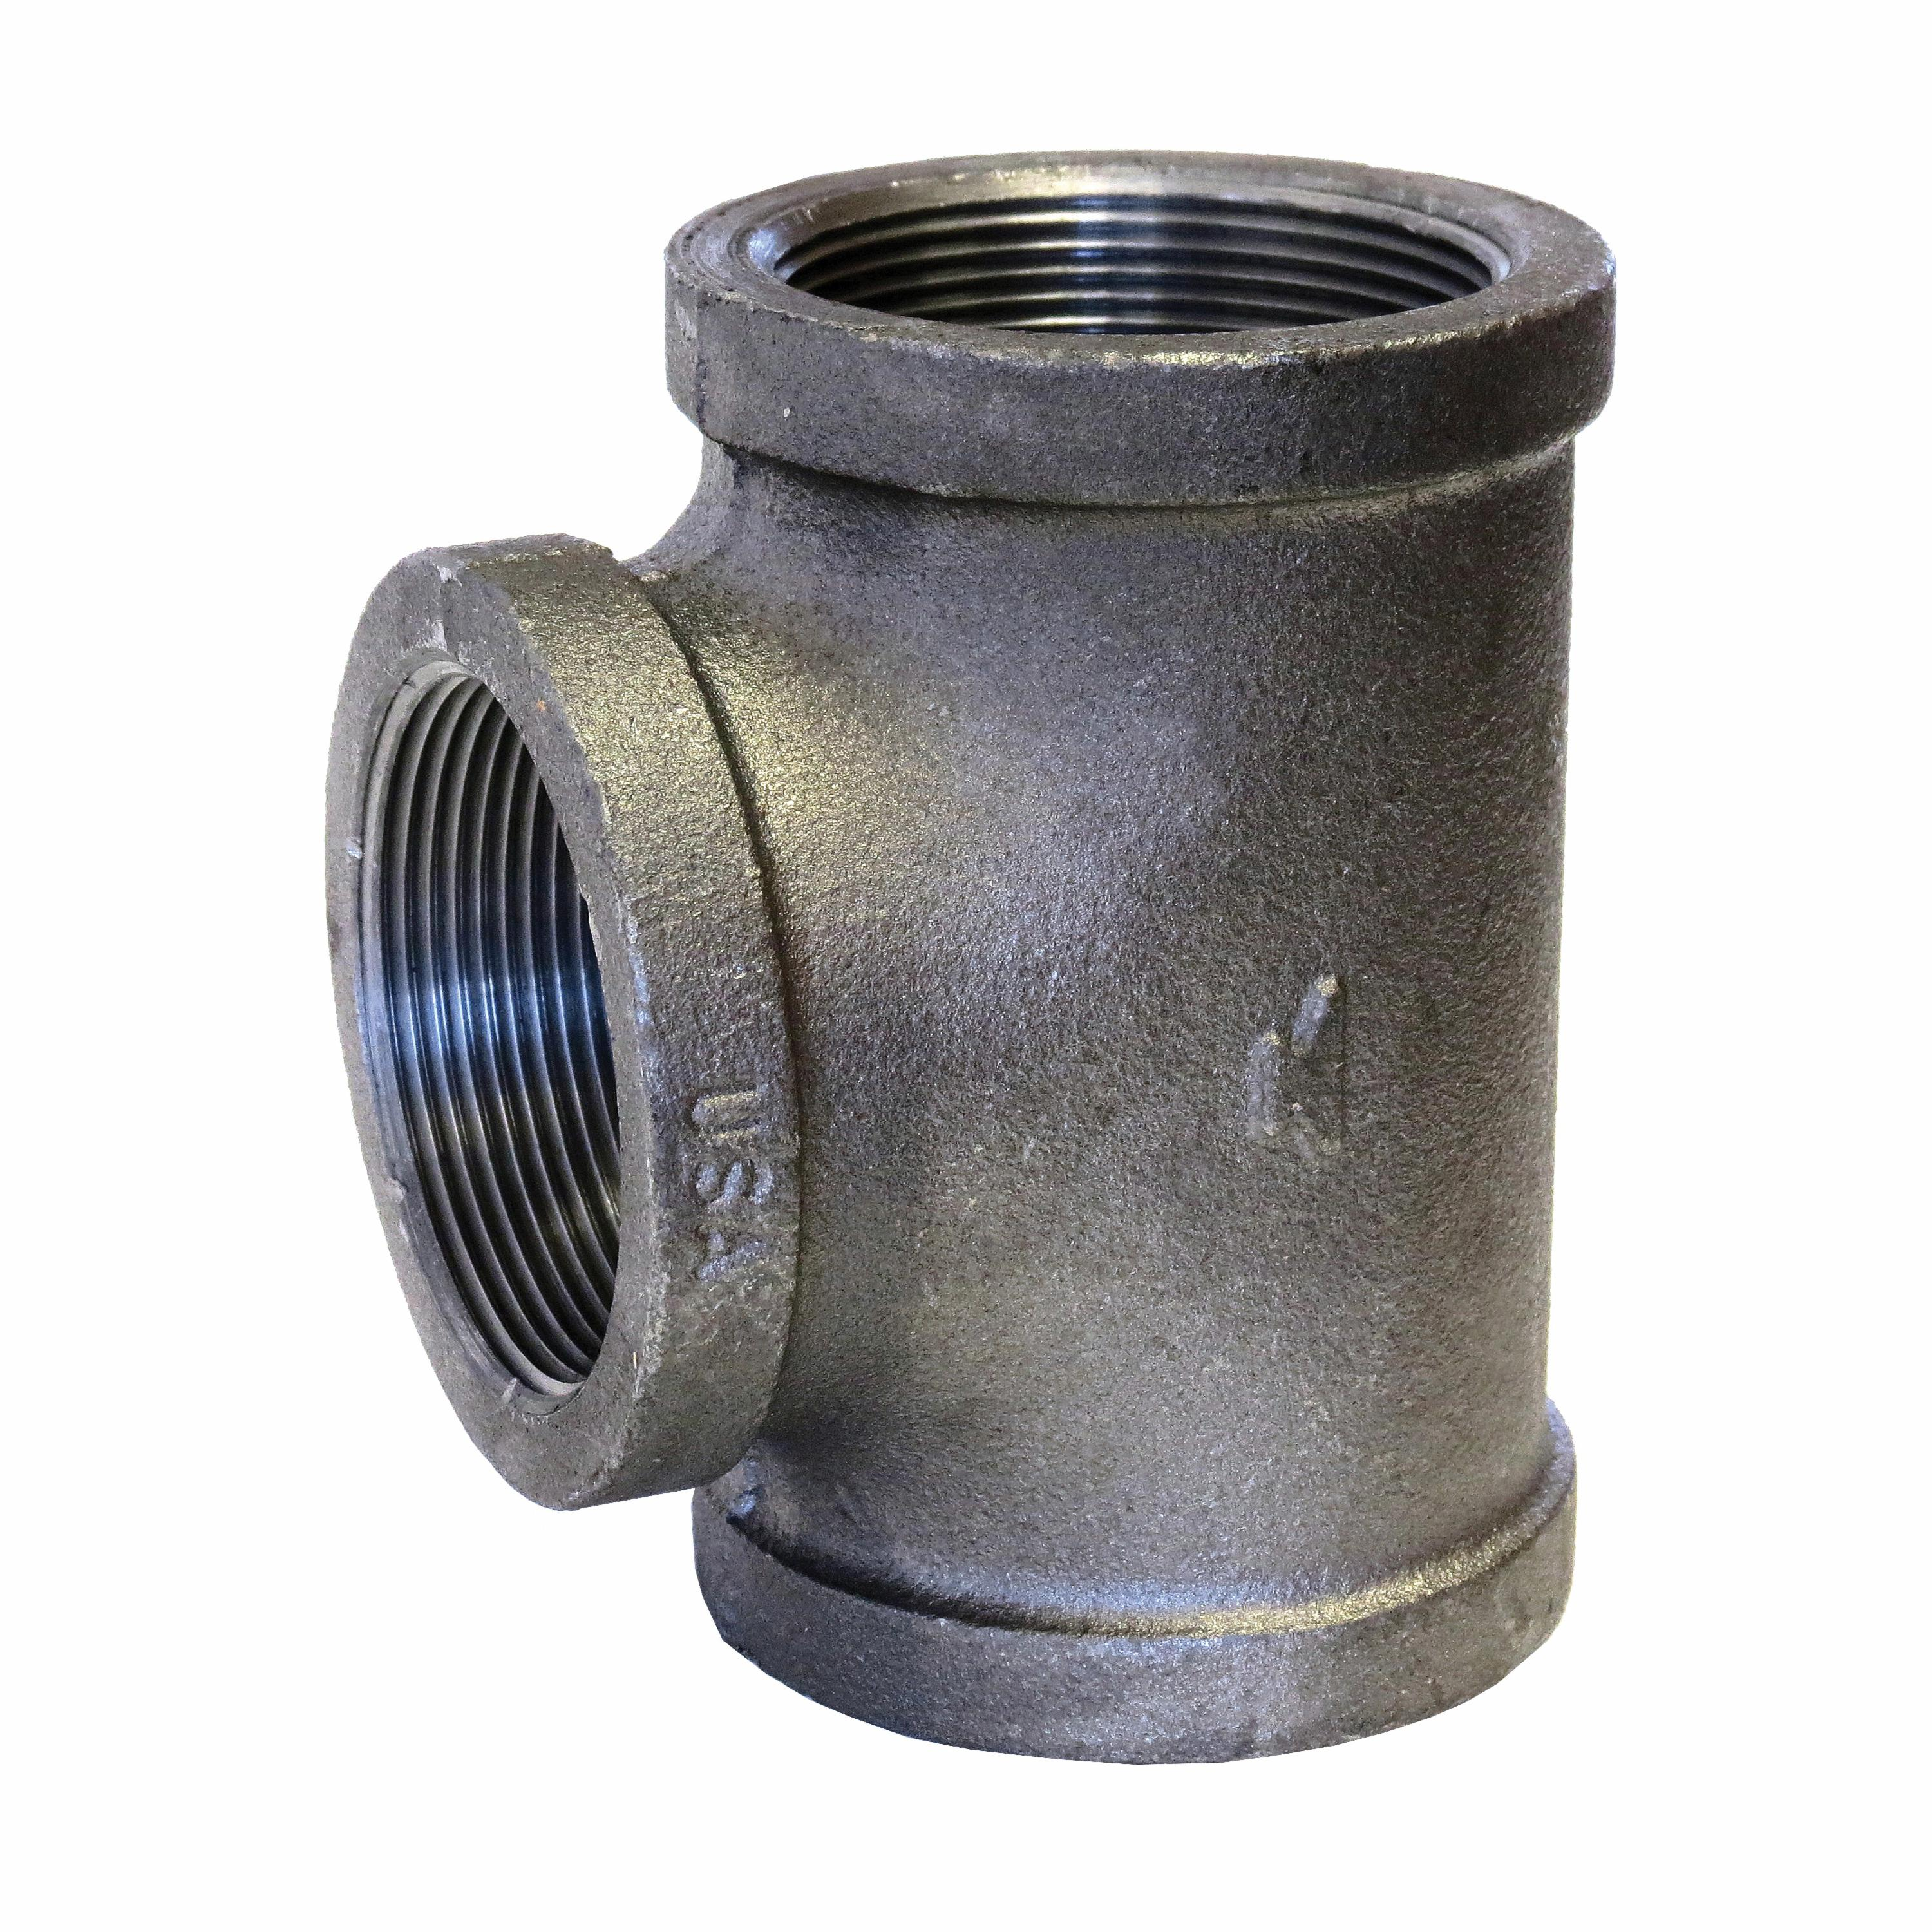 SPF/Anvil™ 0811029818 FIG 3105 Straight Pipe Tee, 1/2 in, FNPT, 150 lb, Malleable Iron, Galvanized, Import